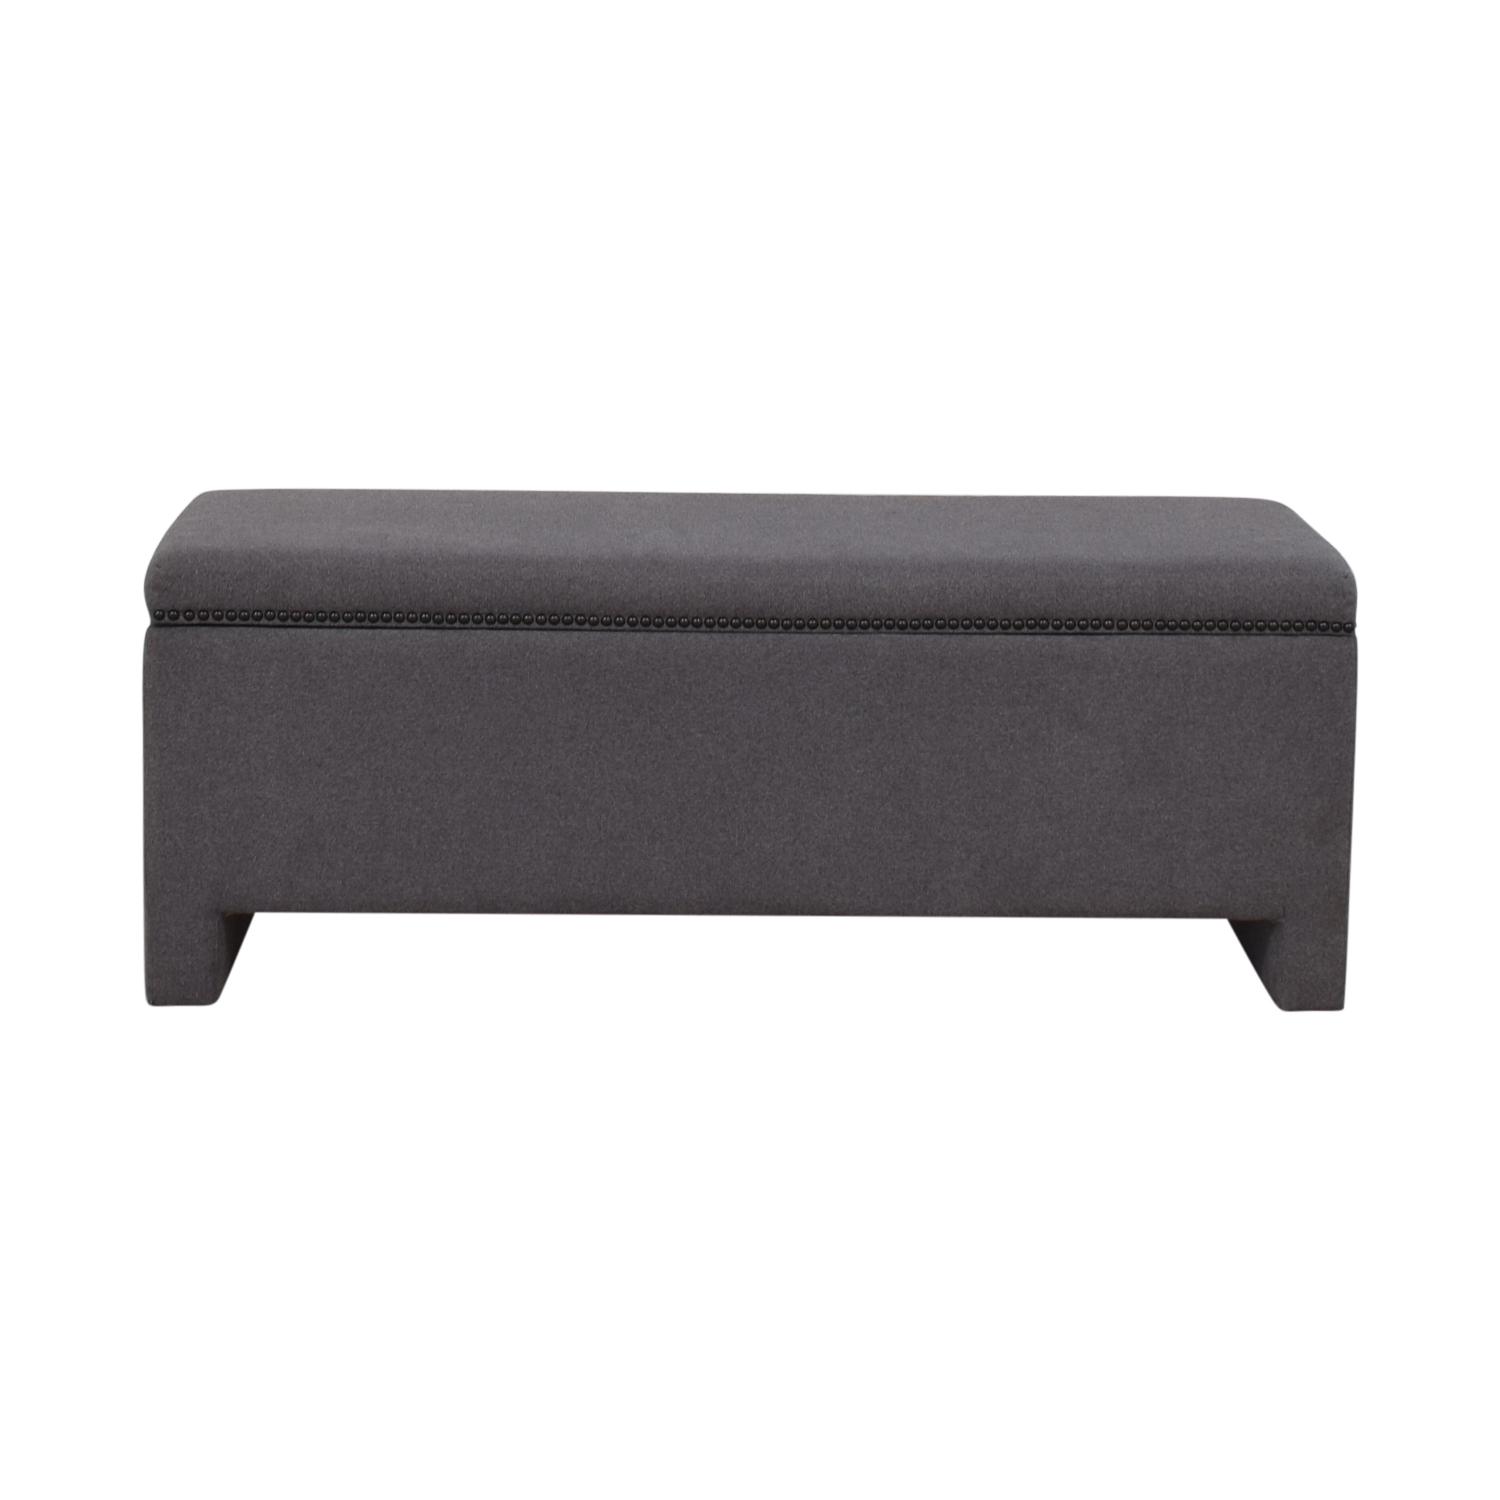 buy West Elm West Elm Nailhead Upholstered Storage Bench online